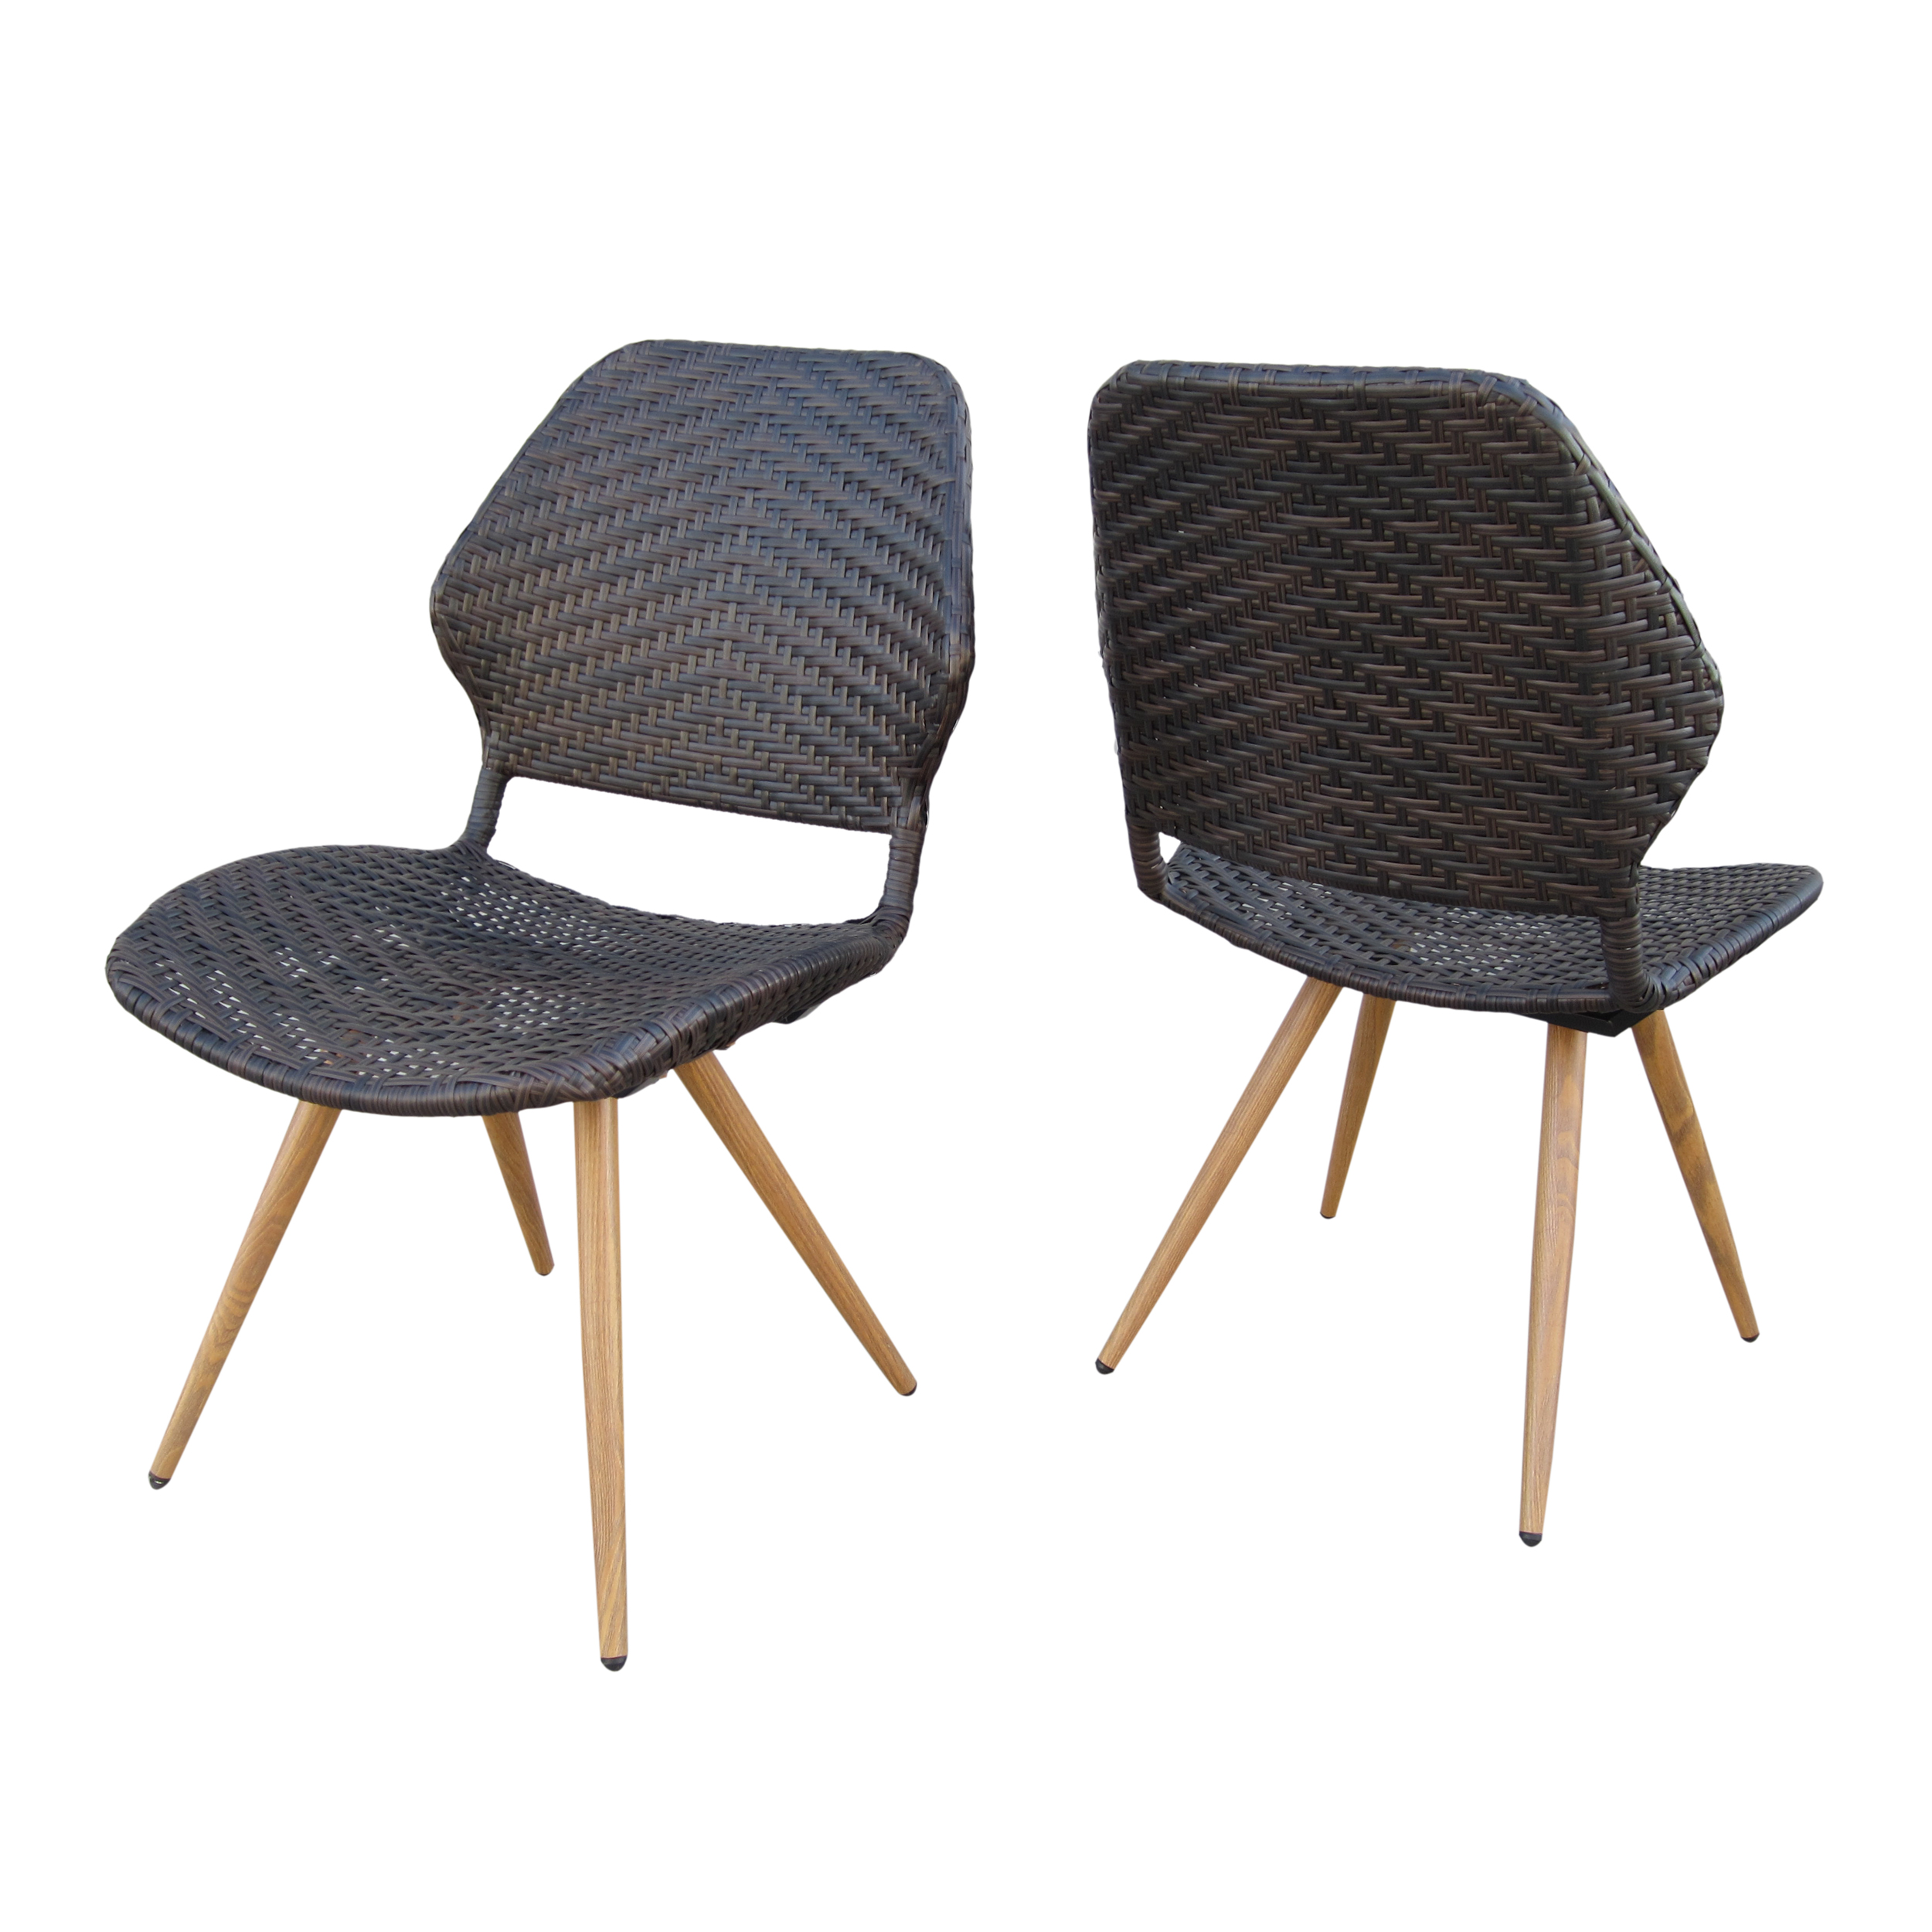 Amaya Outdoor Wicker Dining Chairs with Metal Legs, Set of 2, Multibrown and Brown Wood Finish